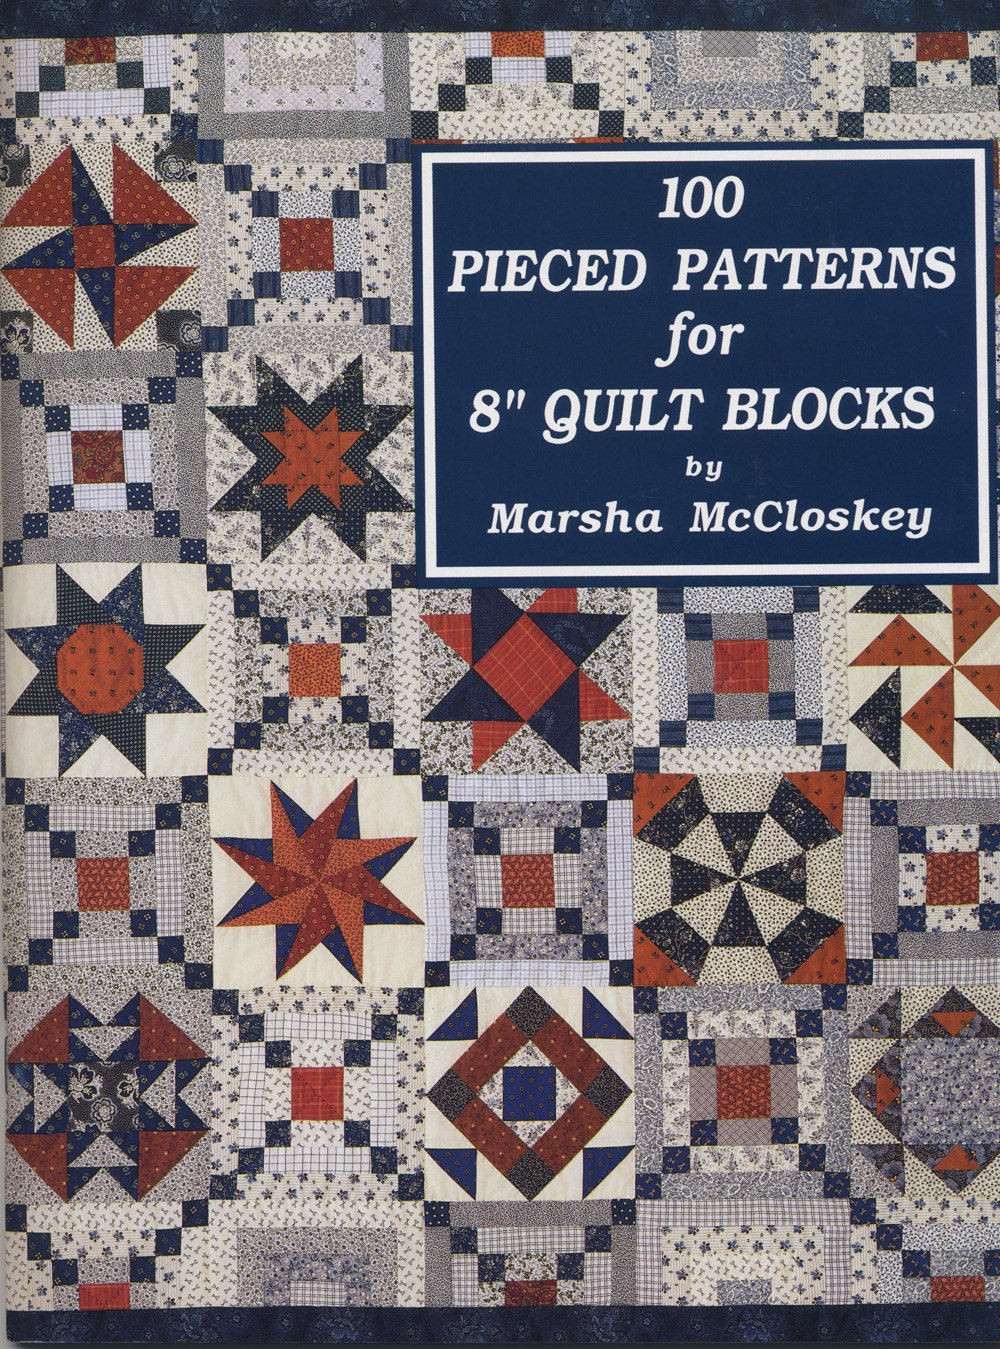 One Hundred Pieced Patterns for Eight Inch Quilt Blocks: Marsha McCloskey:  9780963542205: Amazon.com: Books